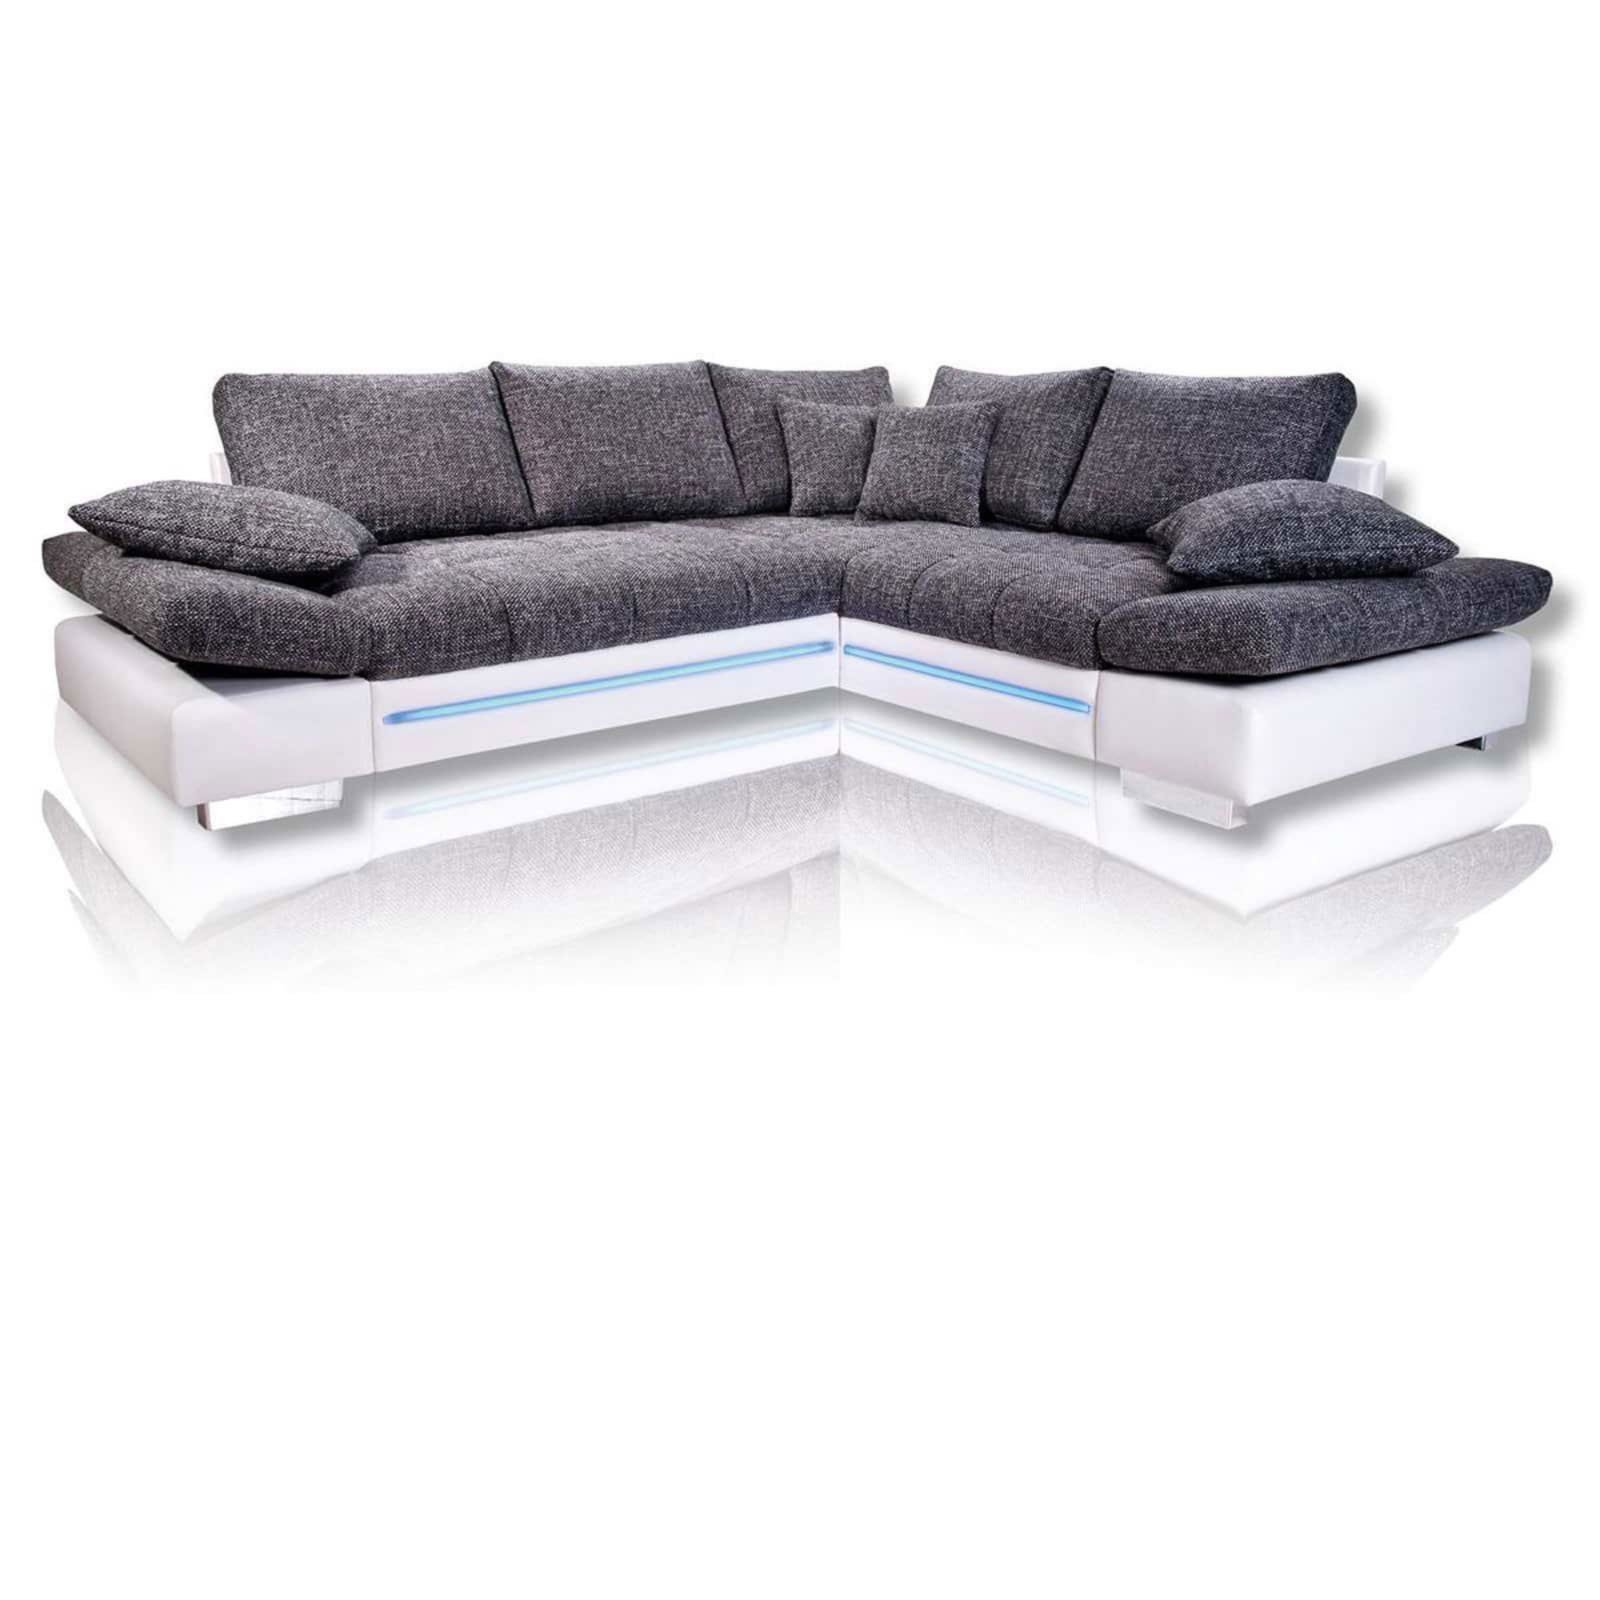 ecksofa wei silber led 2 sitzer links ecksofas l form sofas couches m bel roller. Black Bedroom Furniture Sets. Home Design Ideas